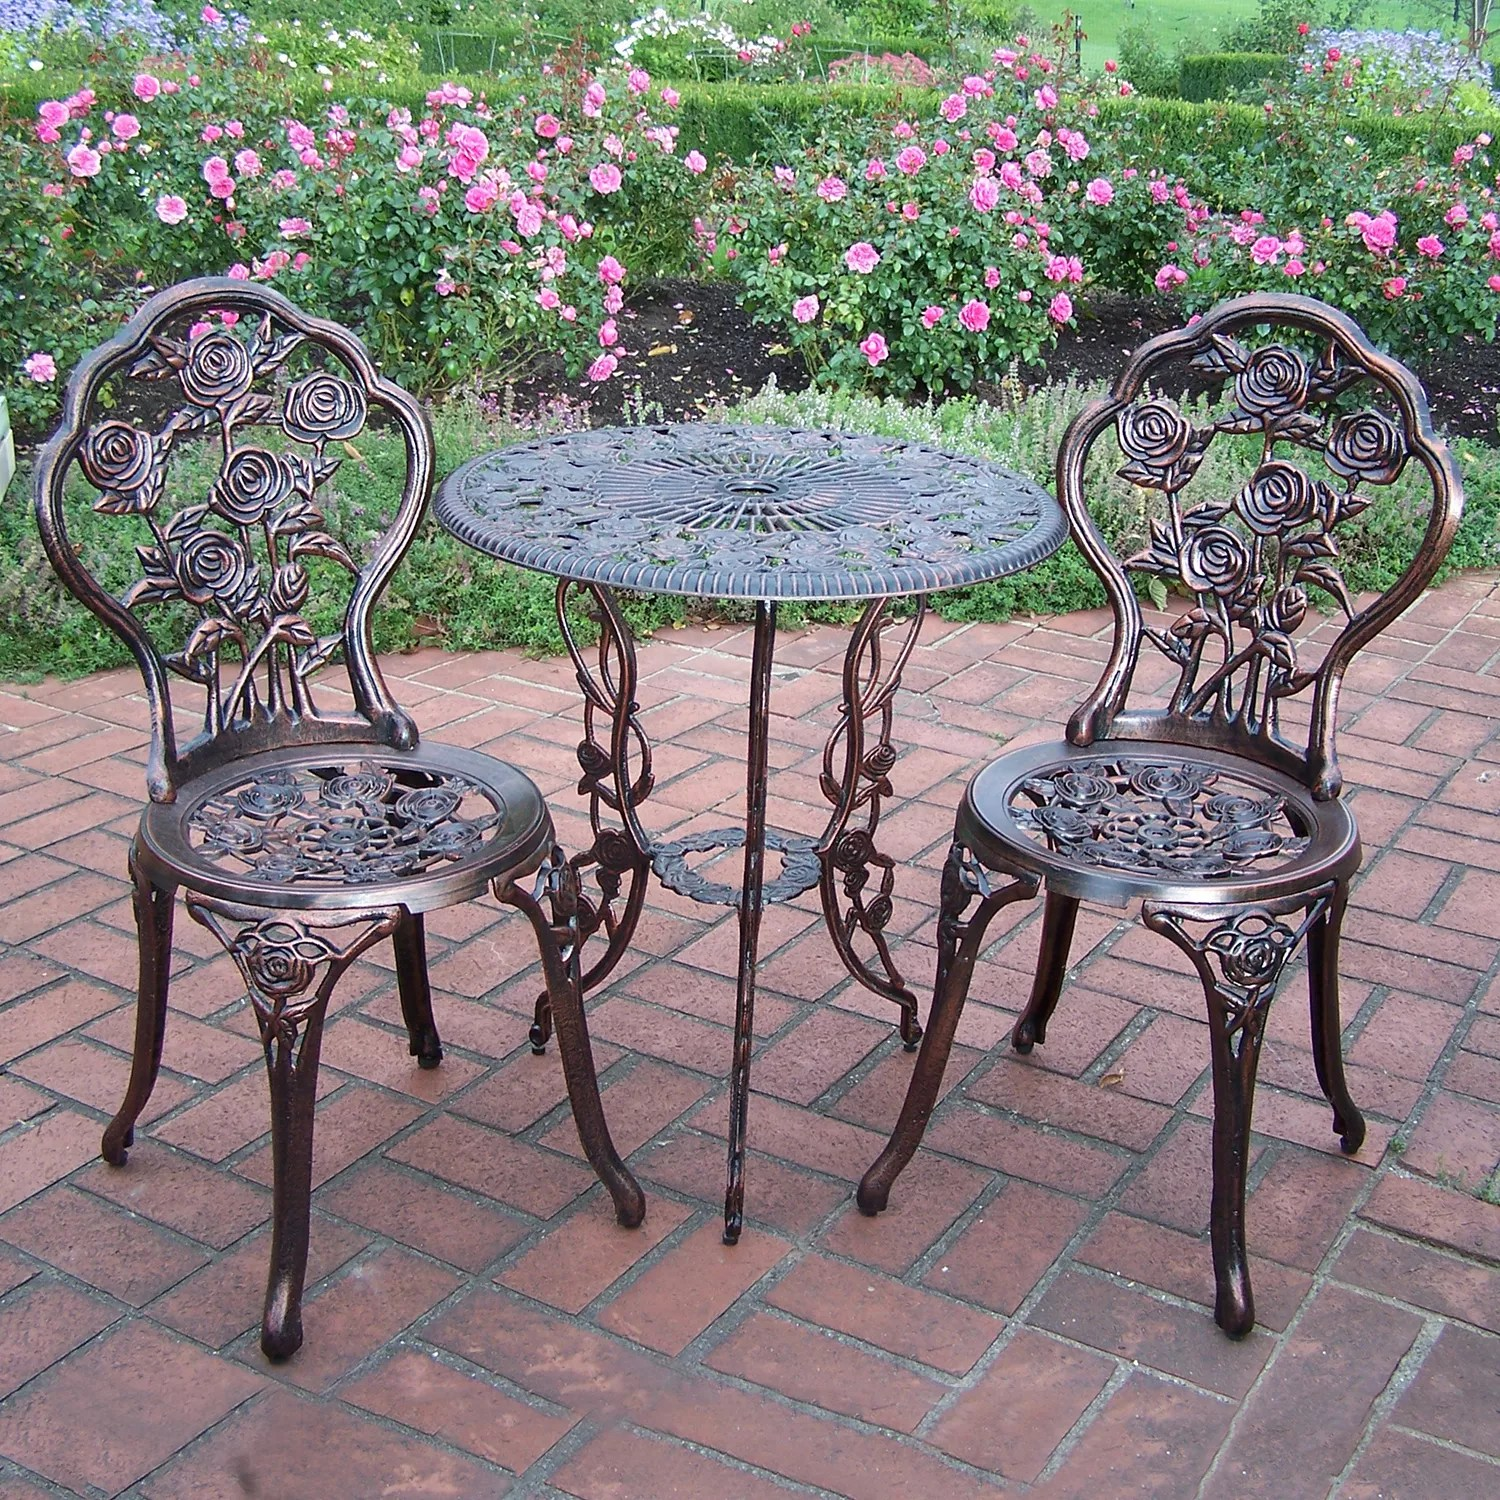 outdoor bistro table and chairs set kidkraft avalon chair white patio sets furniture collections rose 3 piece